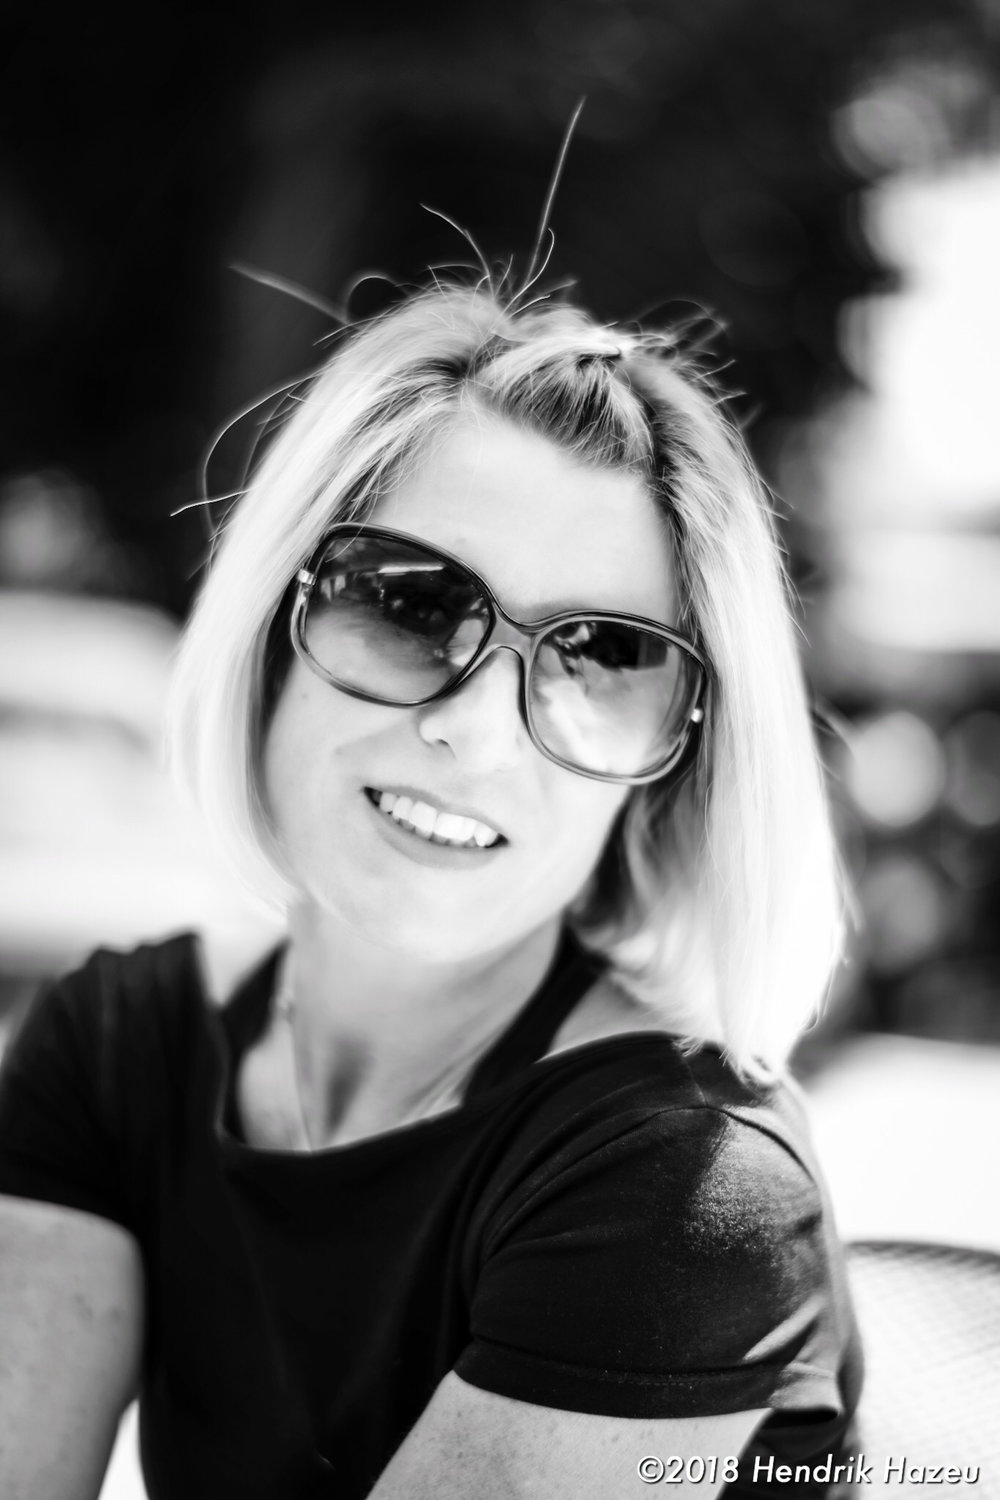 Focused on the rim of my pretty wife's sunglasses, Nikon 58mm f/1.4 @f/1.4, 1/500 sec, 64 ISO